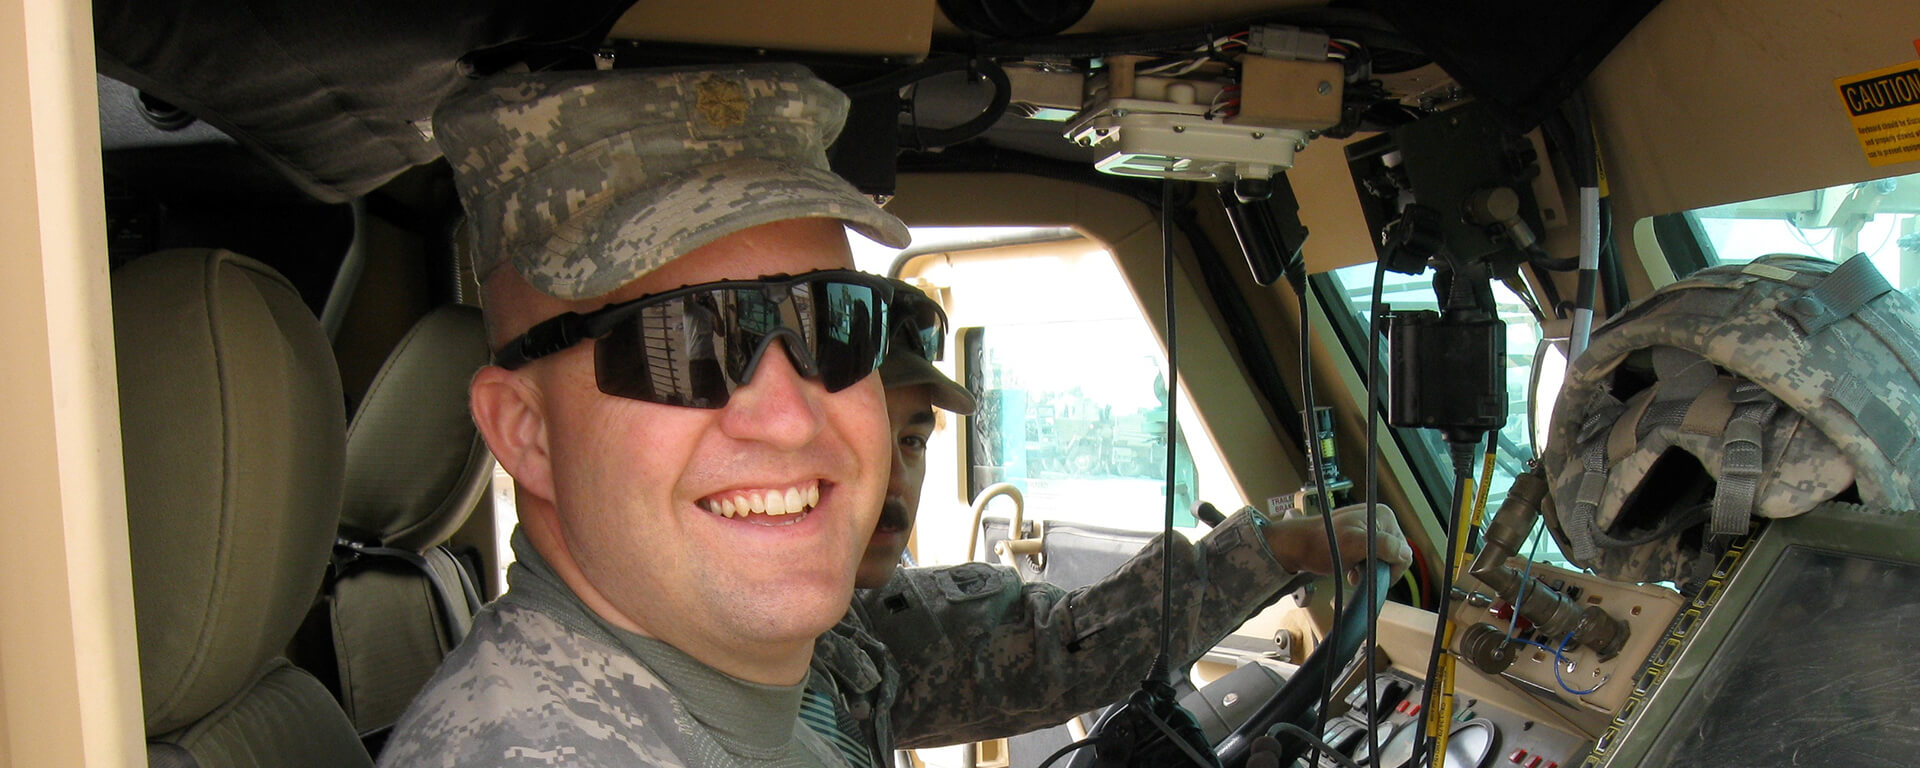 Chris, a Tech leader at Capital One, sits in a military vehicle in his digis while deployed in Afghanistan